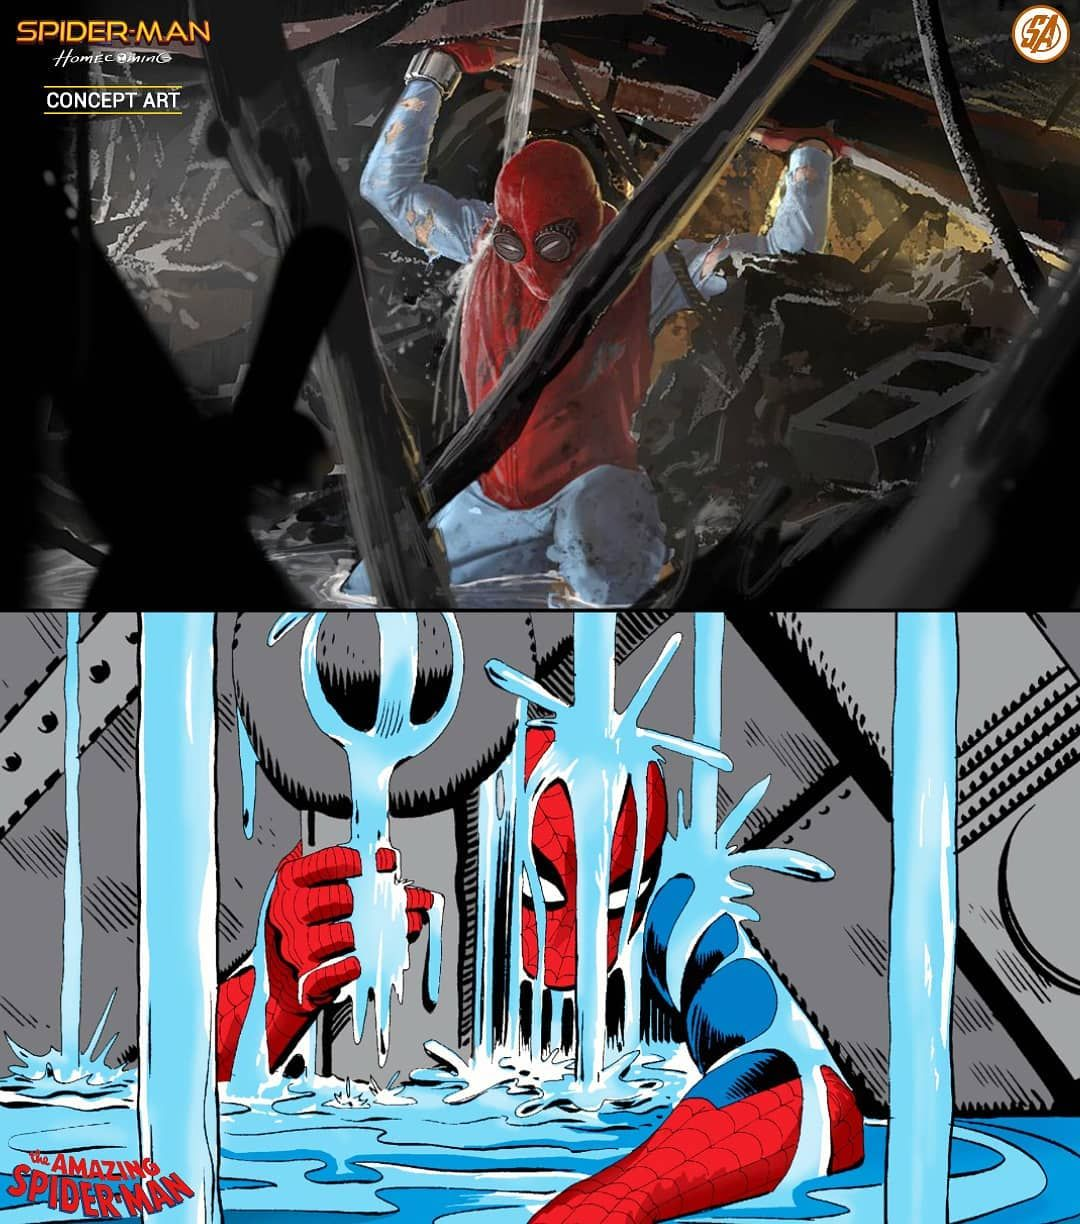 Marvel Studios Concept Artist Shares Concept Art Behind A Key Sequence In Spider Man Homecoming Inspired By Stan Lee And Ste Spiderman Steve Ditko Concept Art